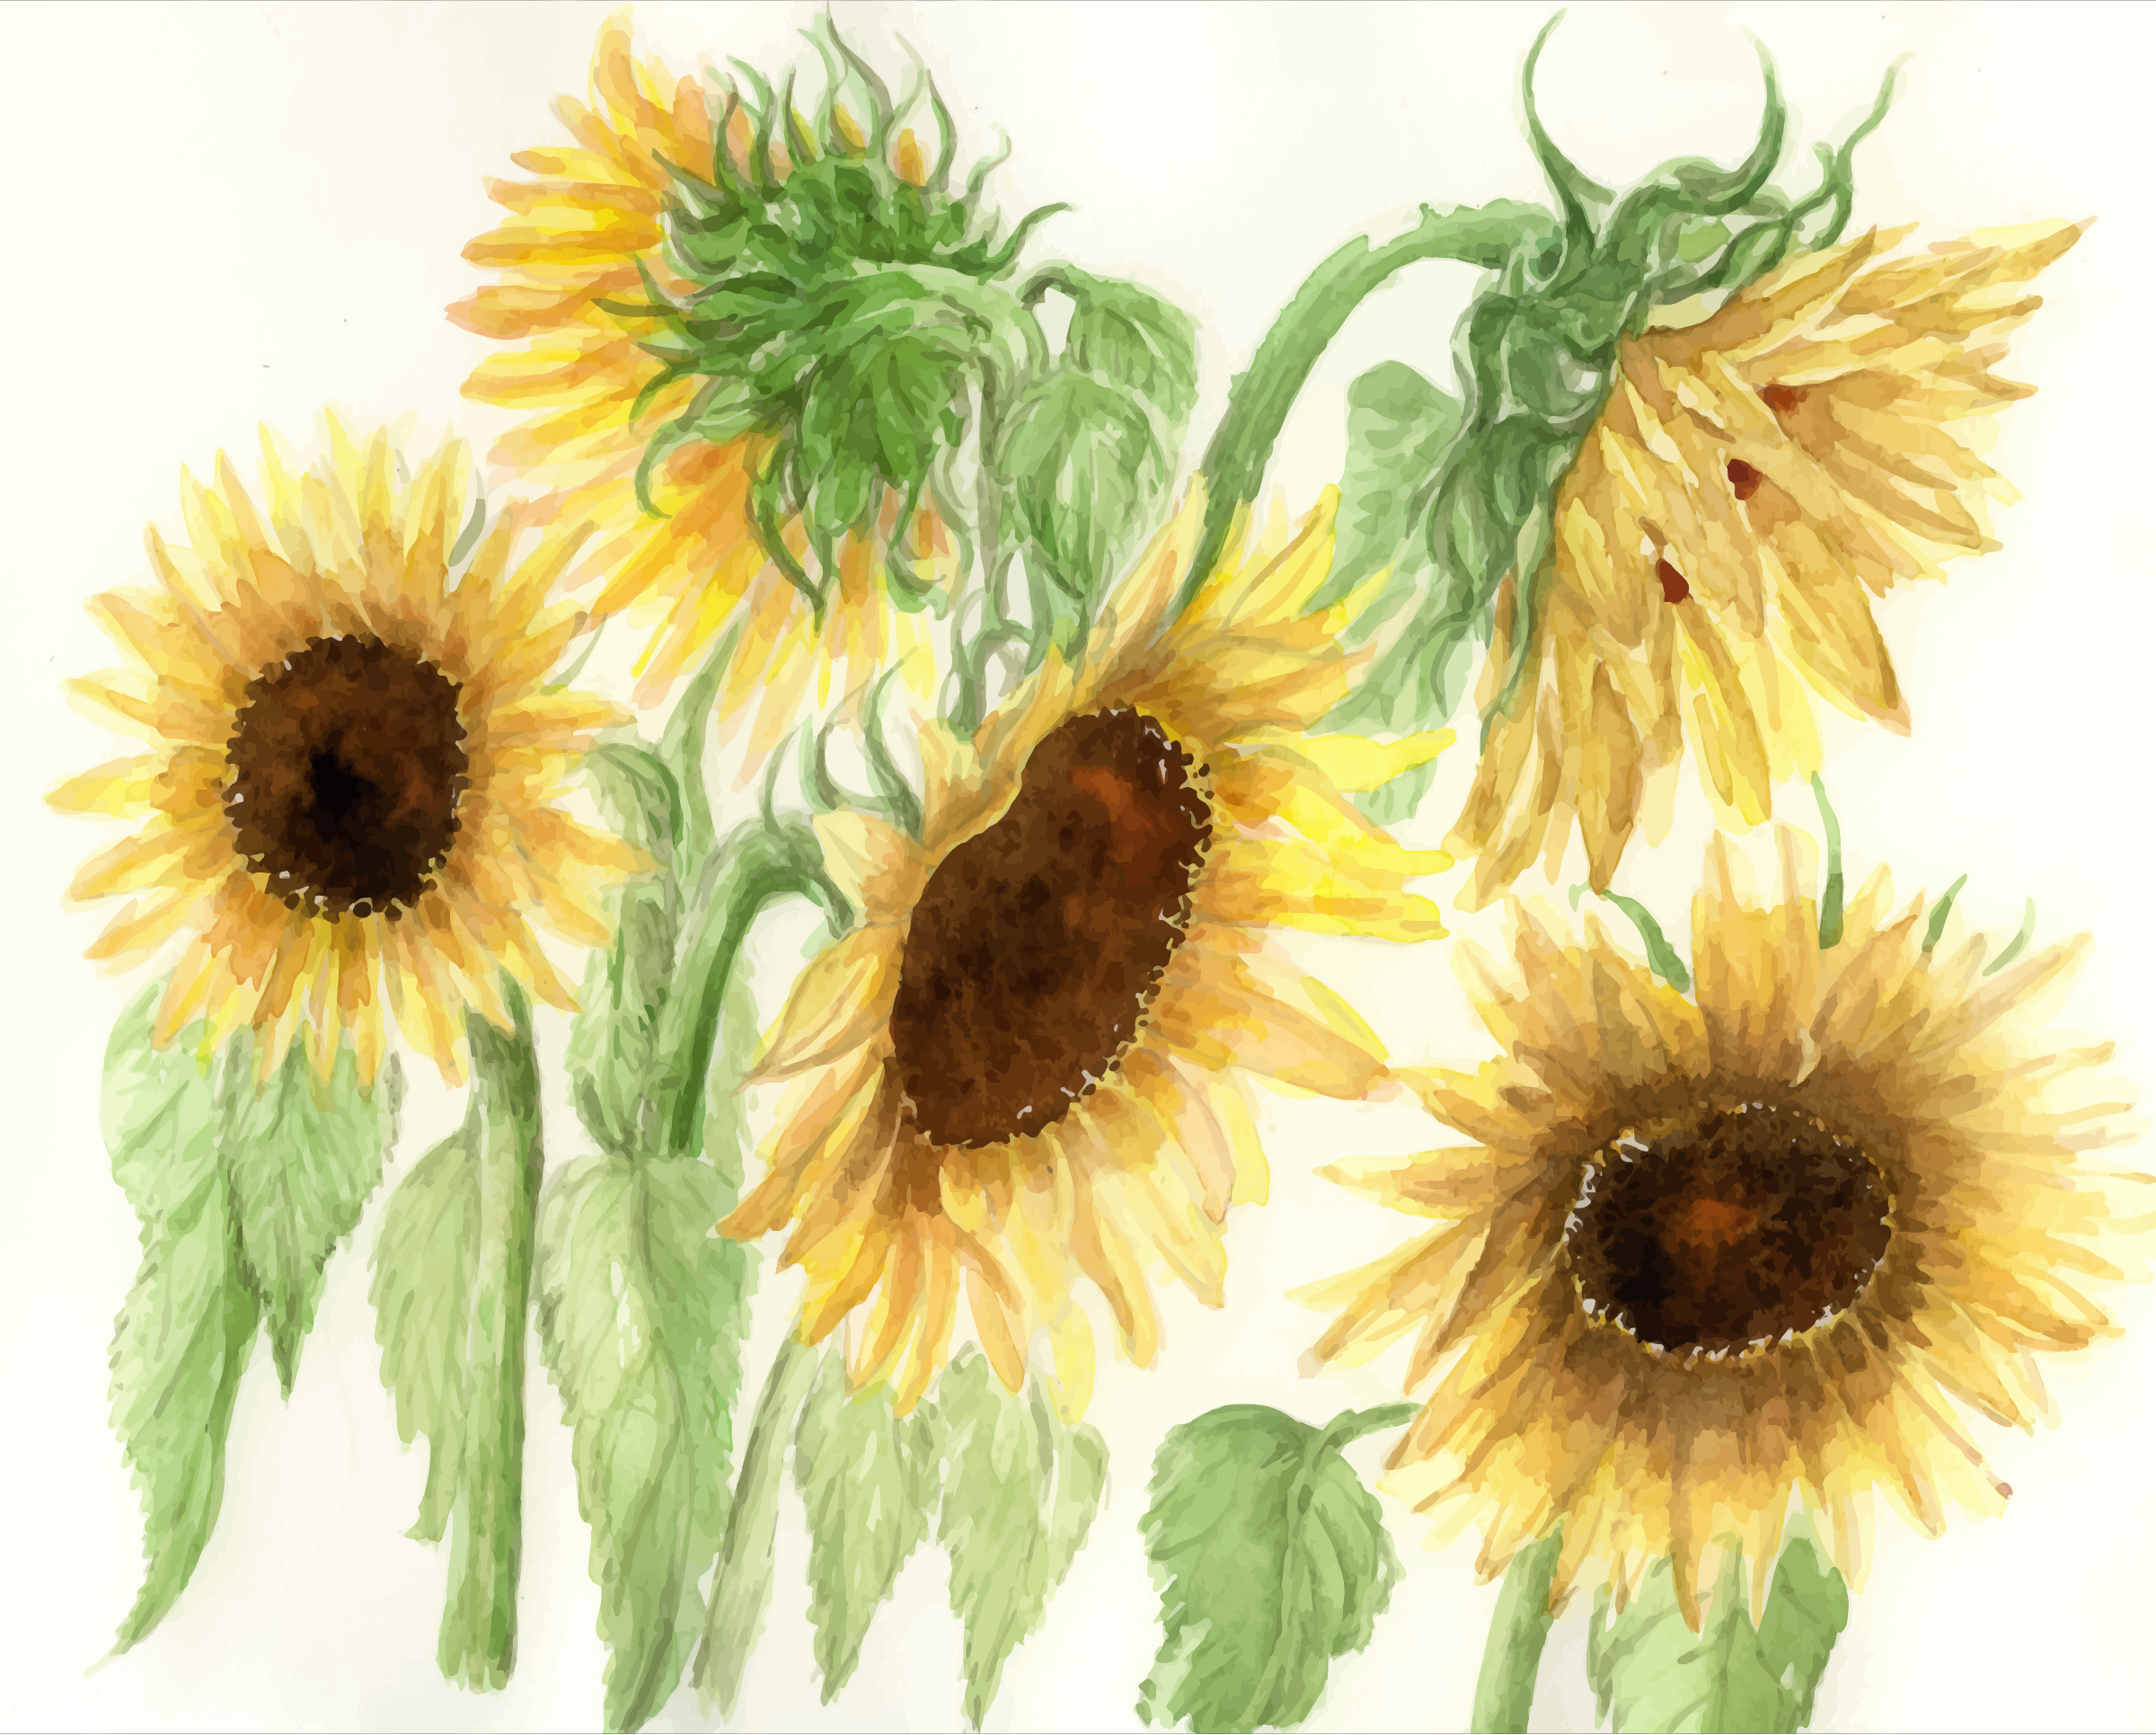 cristieleung's Sunflowers vectorised by Firkin